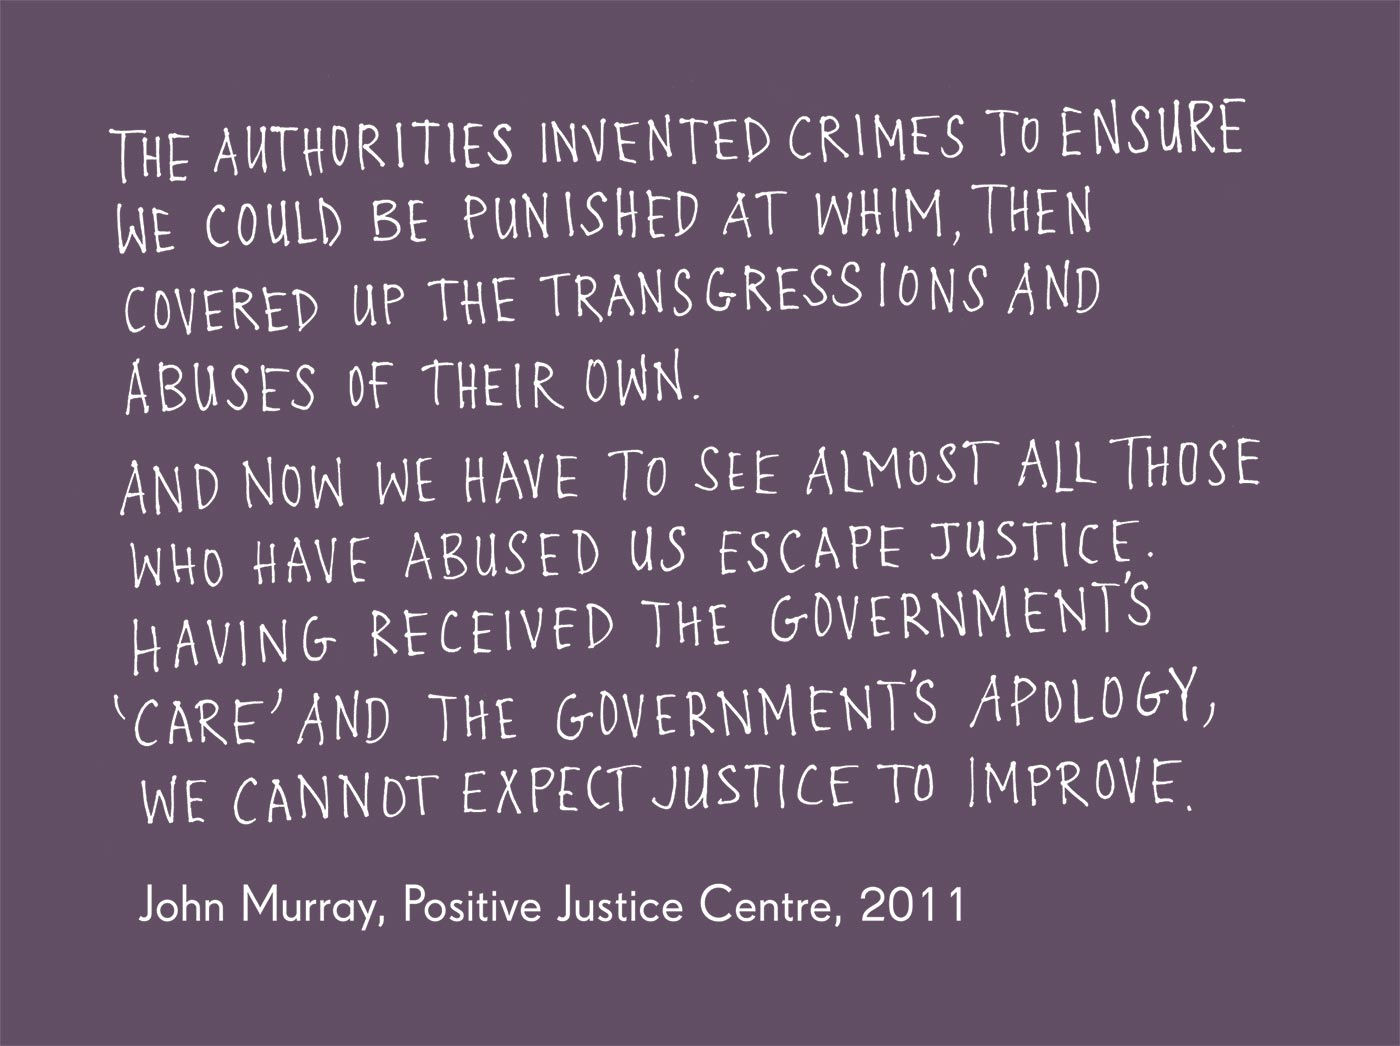 Exhibition graphic panel that reads: 'The authorities invented crimes to ensure we could be punished at whim, then covered up the transgressions and abuses of their own. And now we have to see almost all those who have abused us escape justice. Having received the government's 'care' and the government's apology, we cannot expect justice to improve', attributed to 'John Murray, Positive Justice Centre', 2011. - click to view larger image